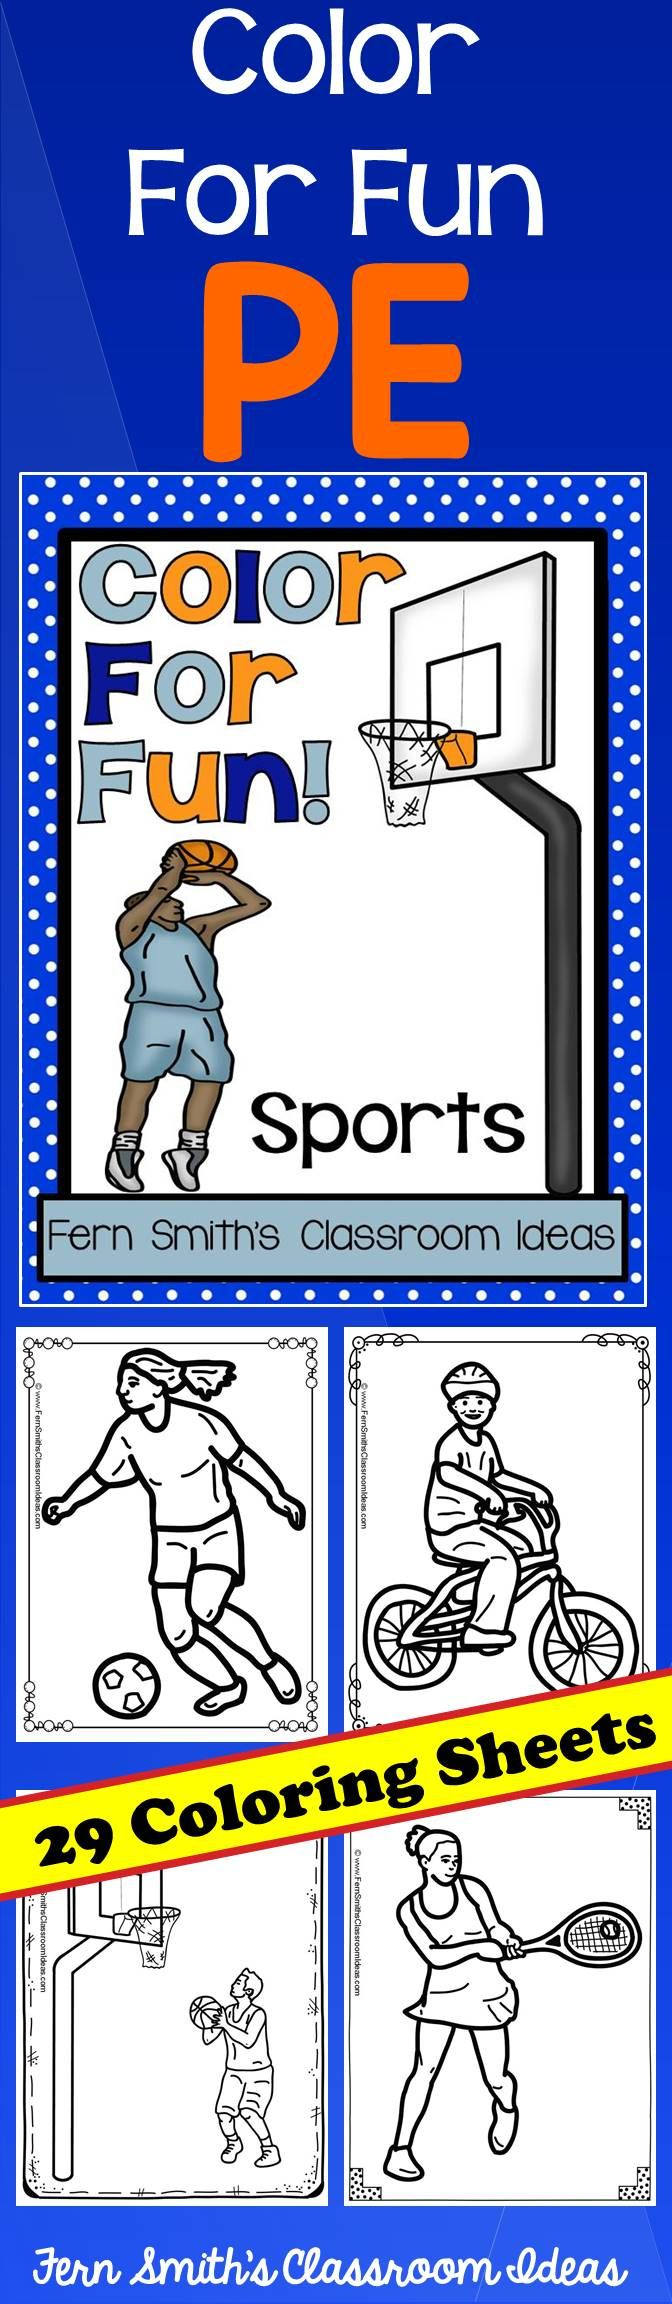 Coloring Pages for PE and Sports - PE Sports Fun! Color For Fun ...